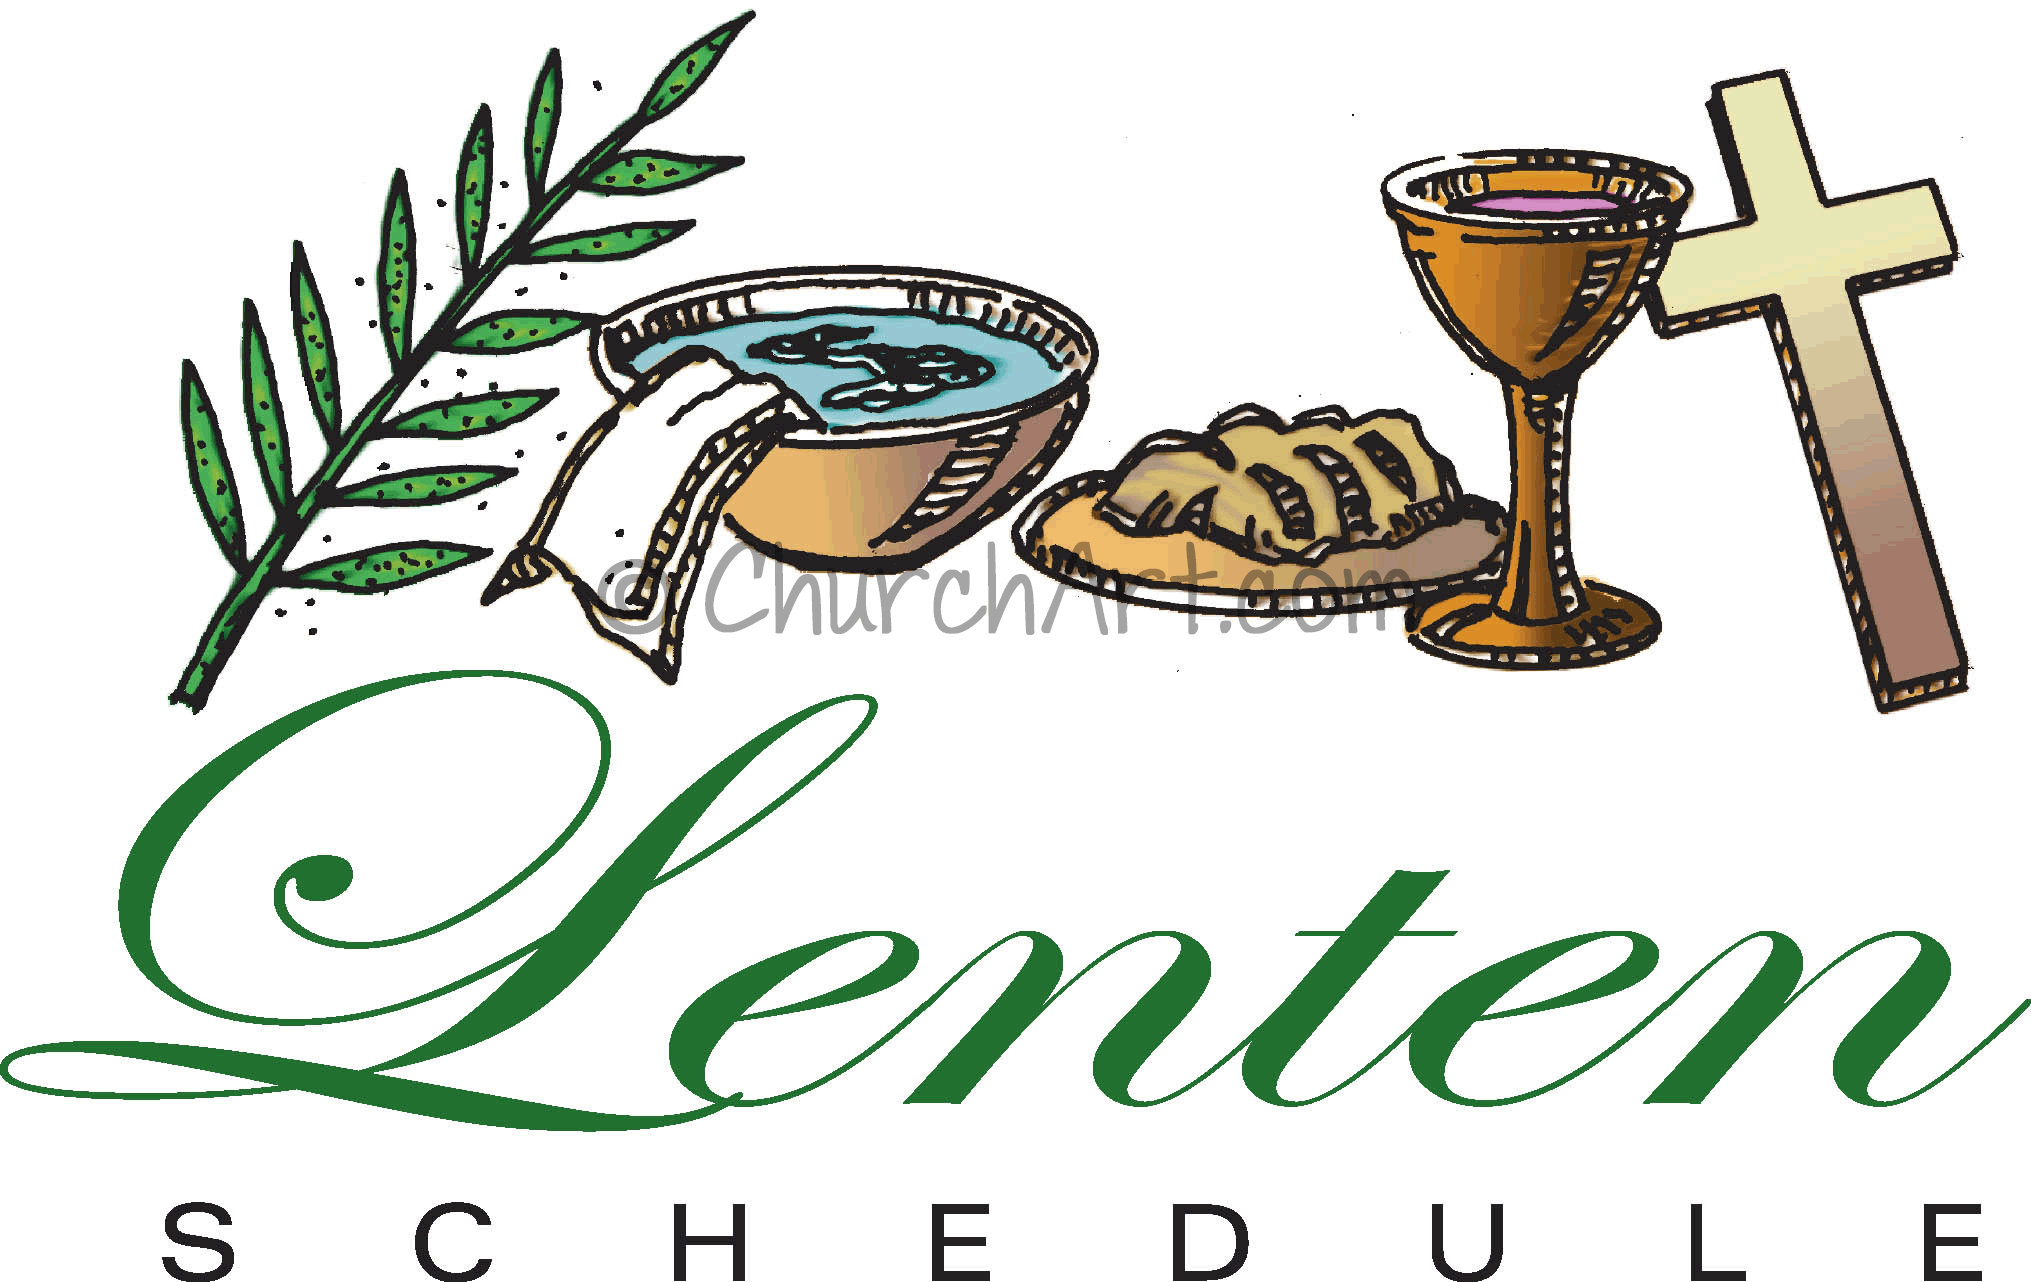 Clip-art image with Lenten symbols of a  palm leaf, cross, bread and wine for communion and wash bowl for church Lenten Schedule featured in church bulletin or church newsletter